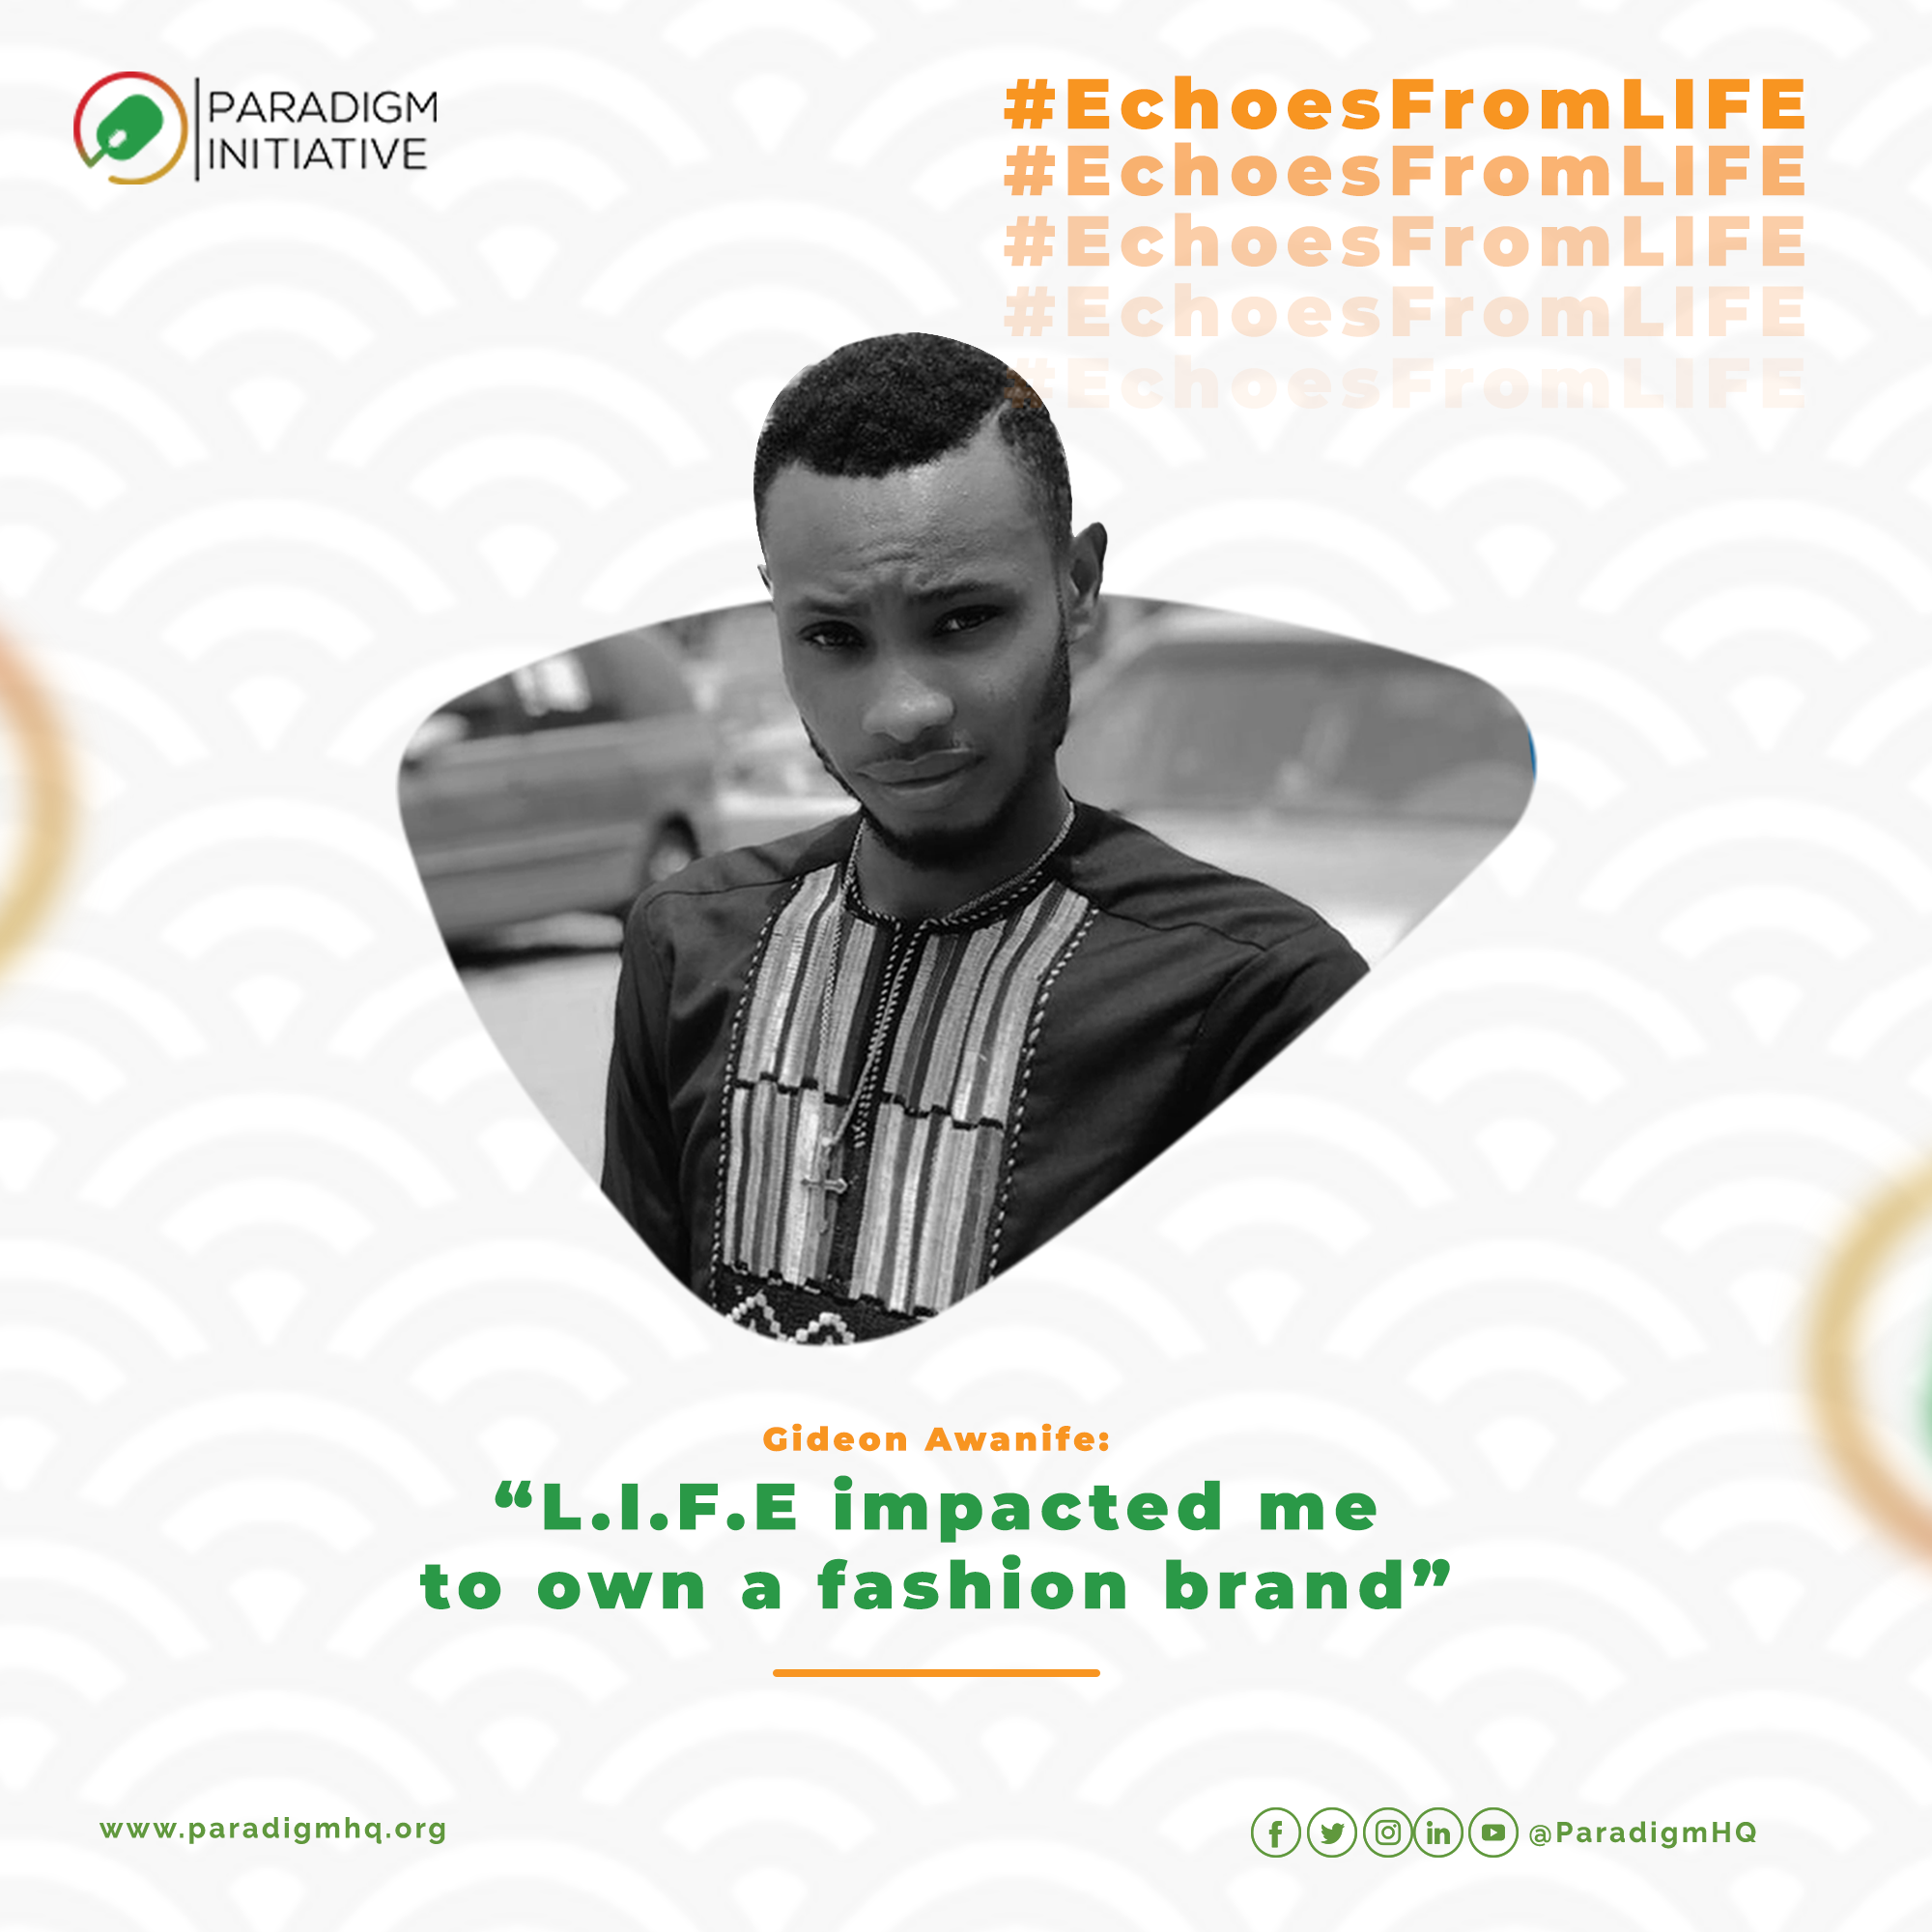 """#EchoesFromLIFE:  """"L.I.F.E impacted me to own a fashion brand"""", Gideon Awanife."""